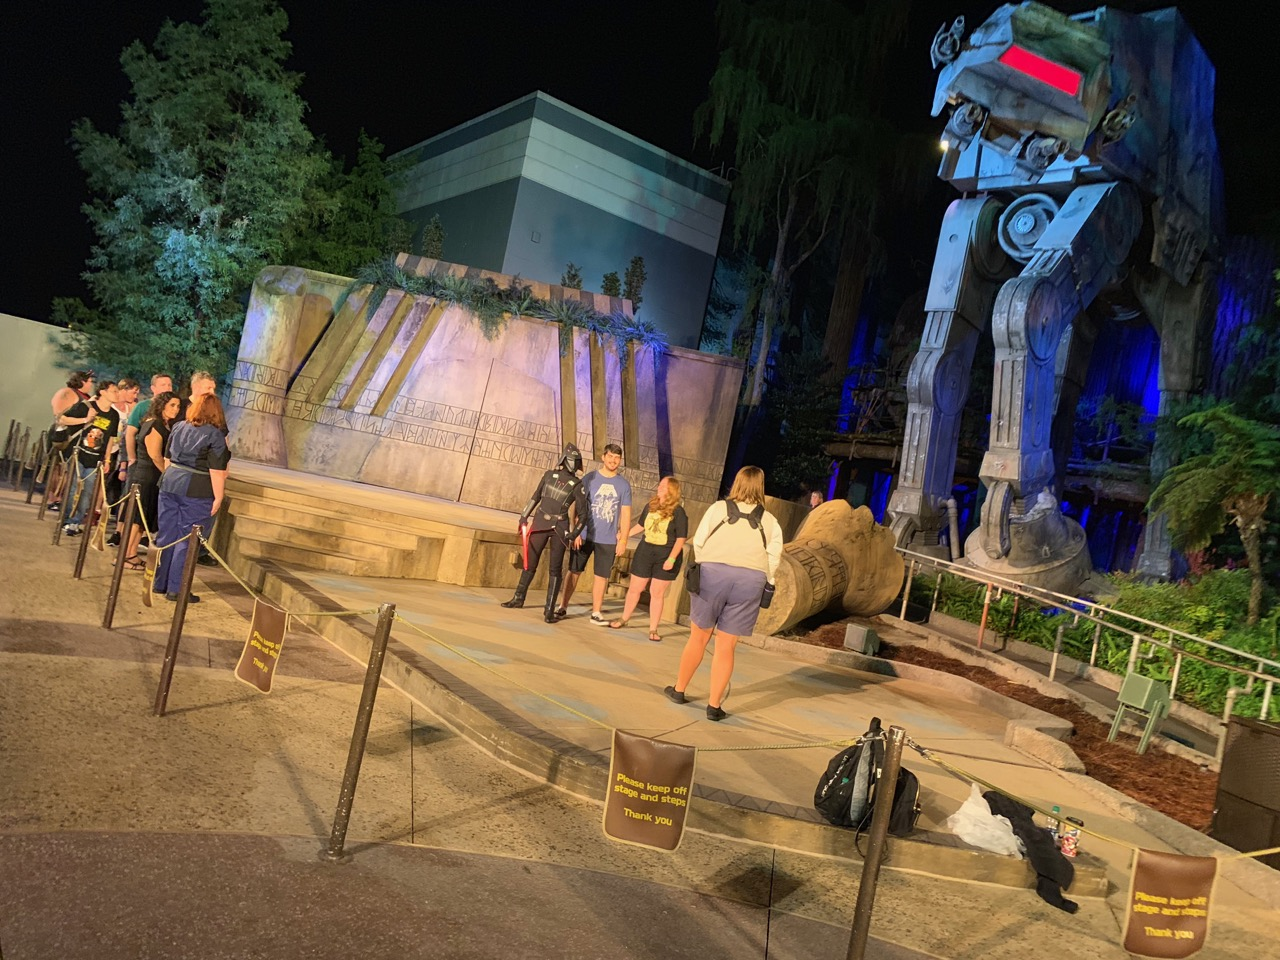 disney world hollywood studios after hours review 17 character.jpeg